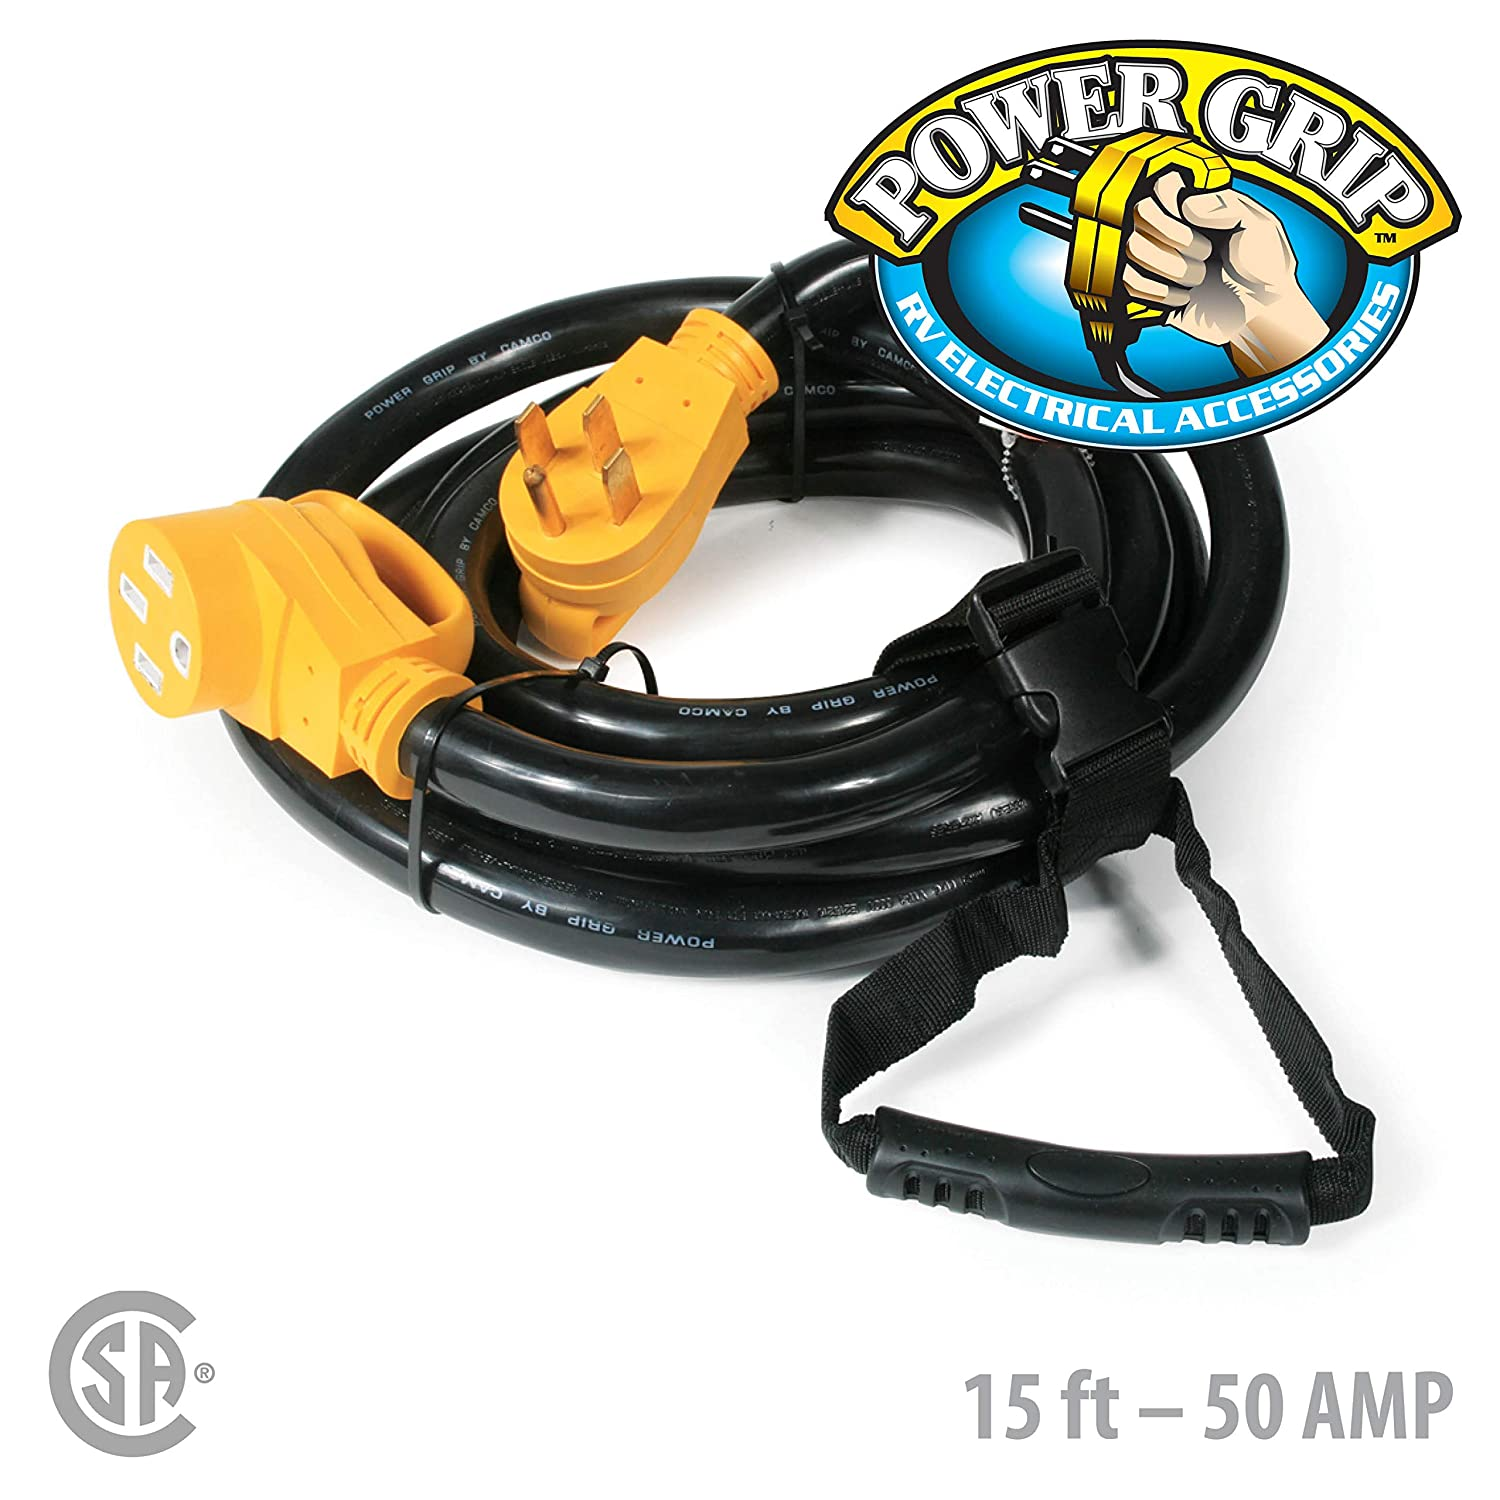 Camco Heavy Duty 50 Amp Rv And Auto Extension Cord With 110 Volt Wiring Powergrip Handle 6 8 Gauge Includes Convenient Carrying Strap 15ft 55194